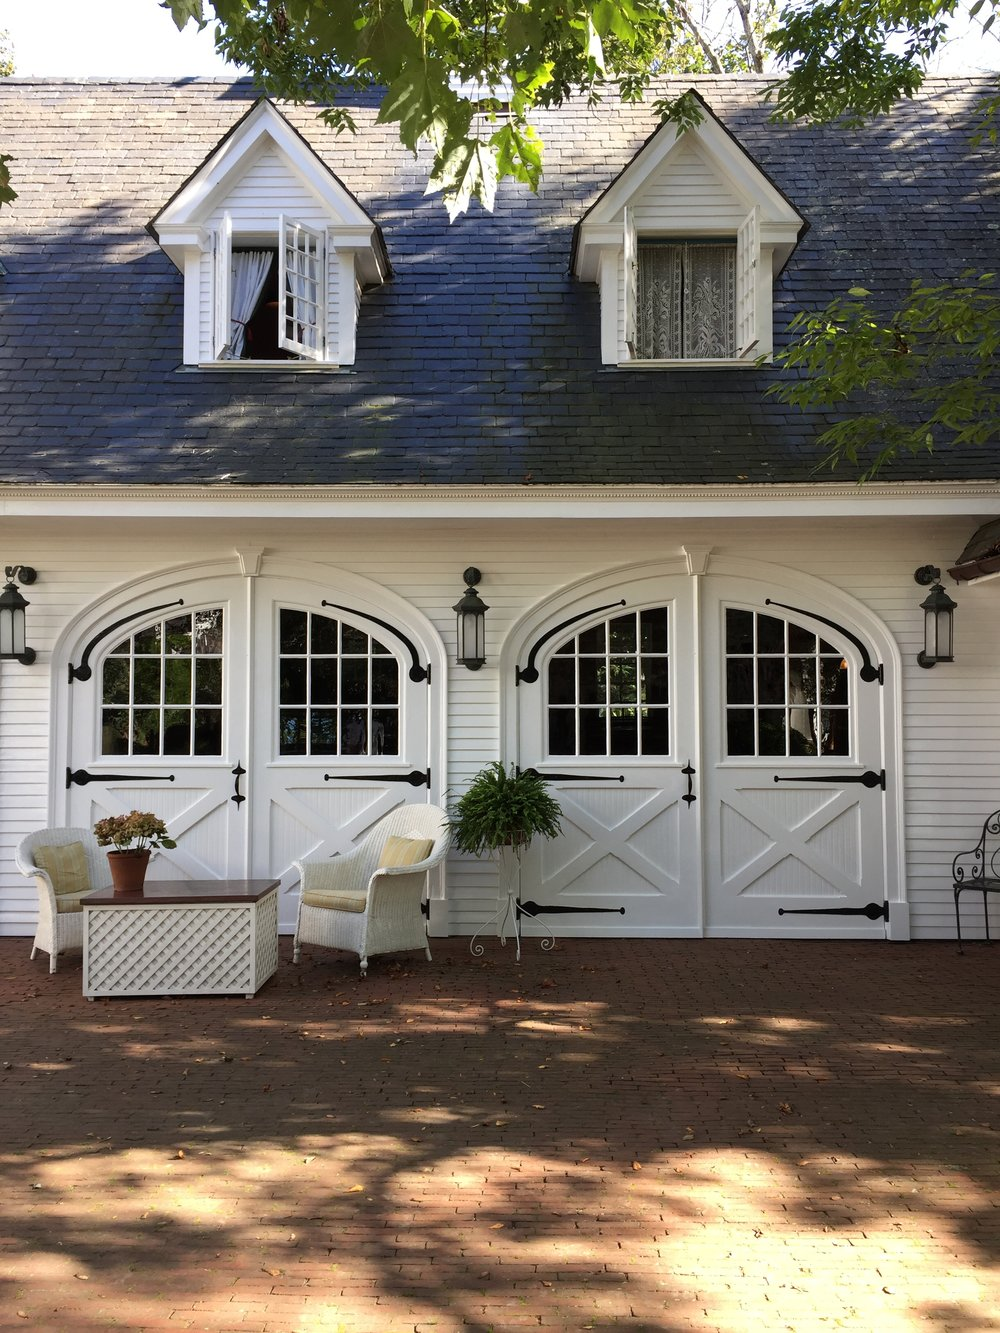 Carriage House The Charlotte Inn Edgartown New England Fine Living